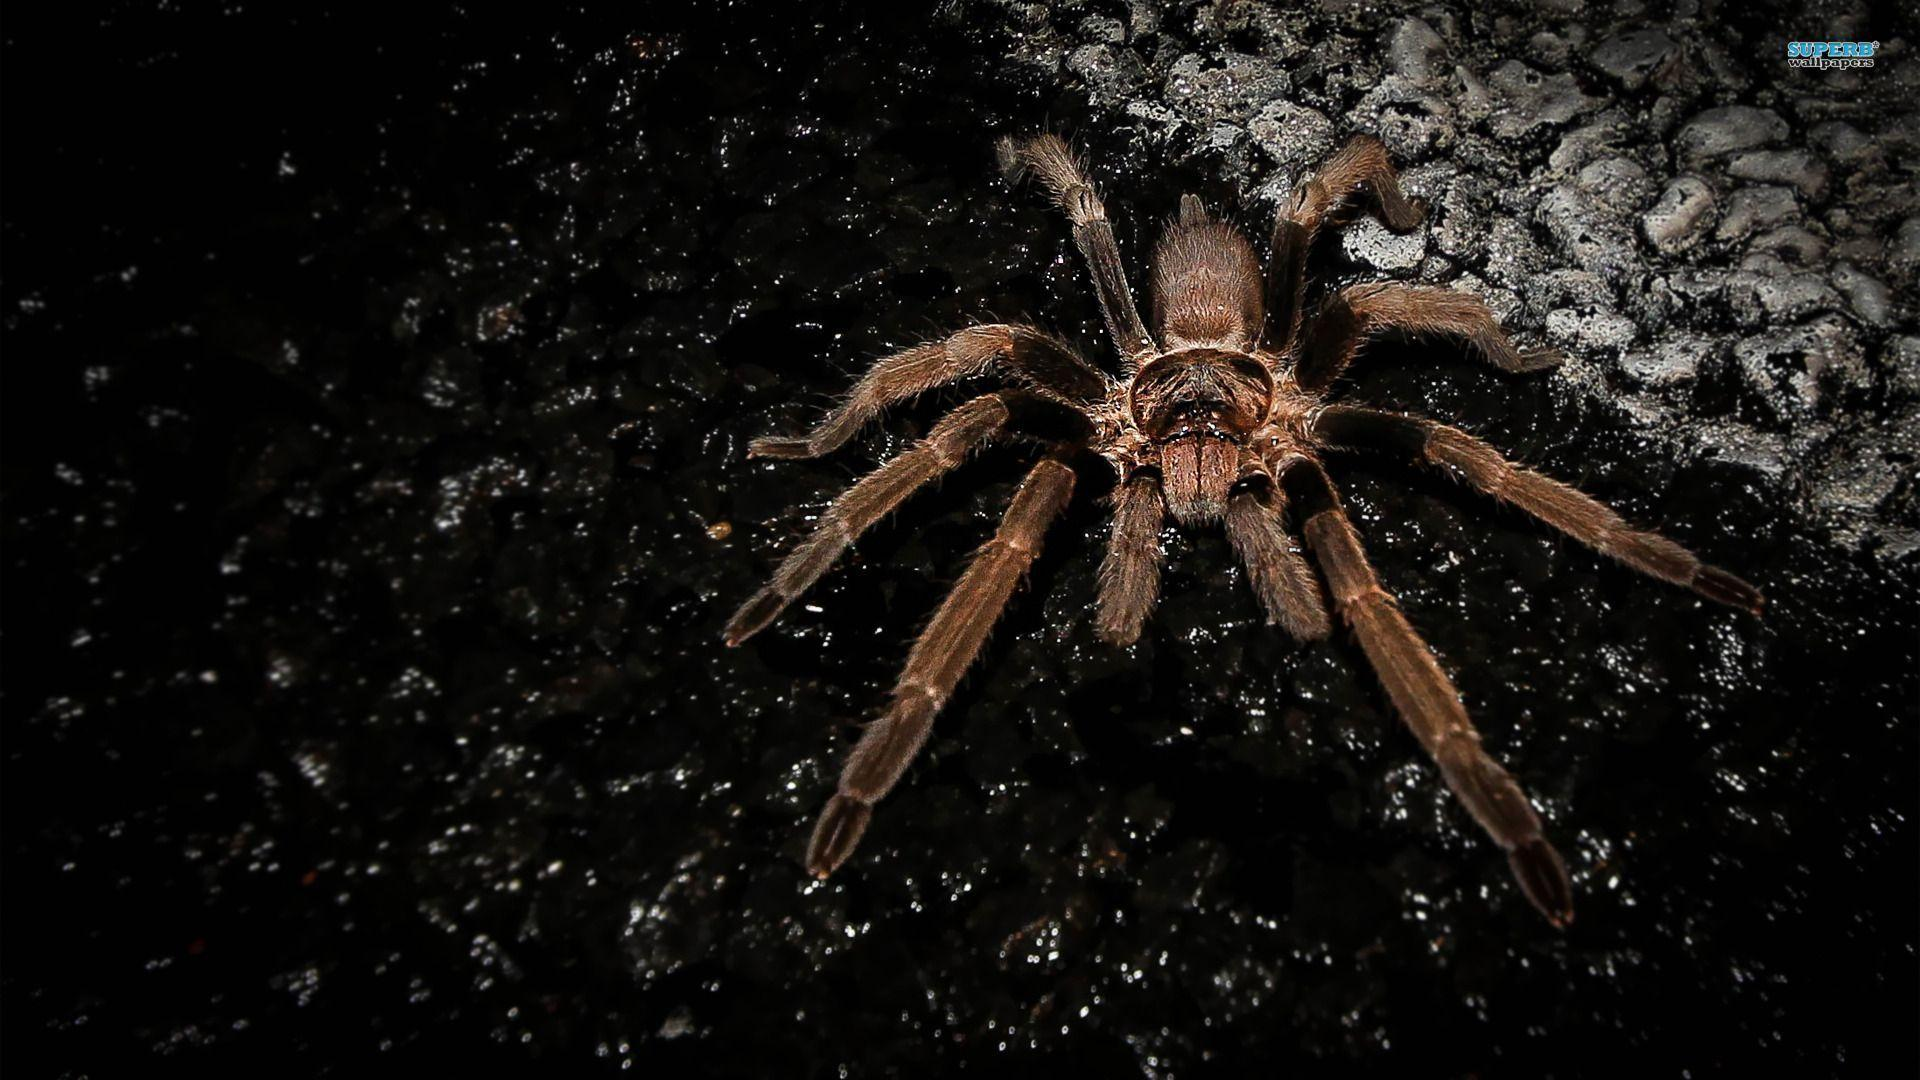 HD Collection Spider Wallpapers | vergapipe.